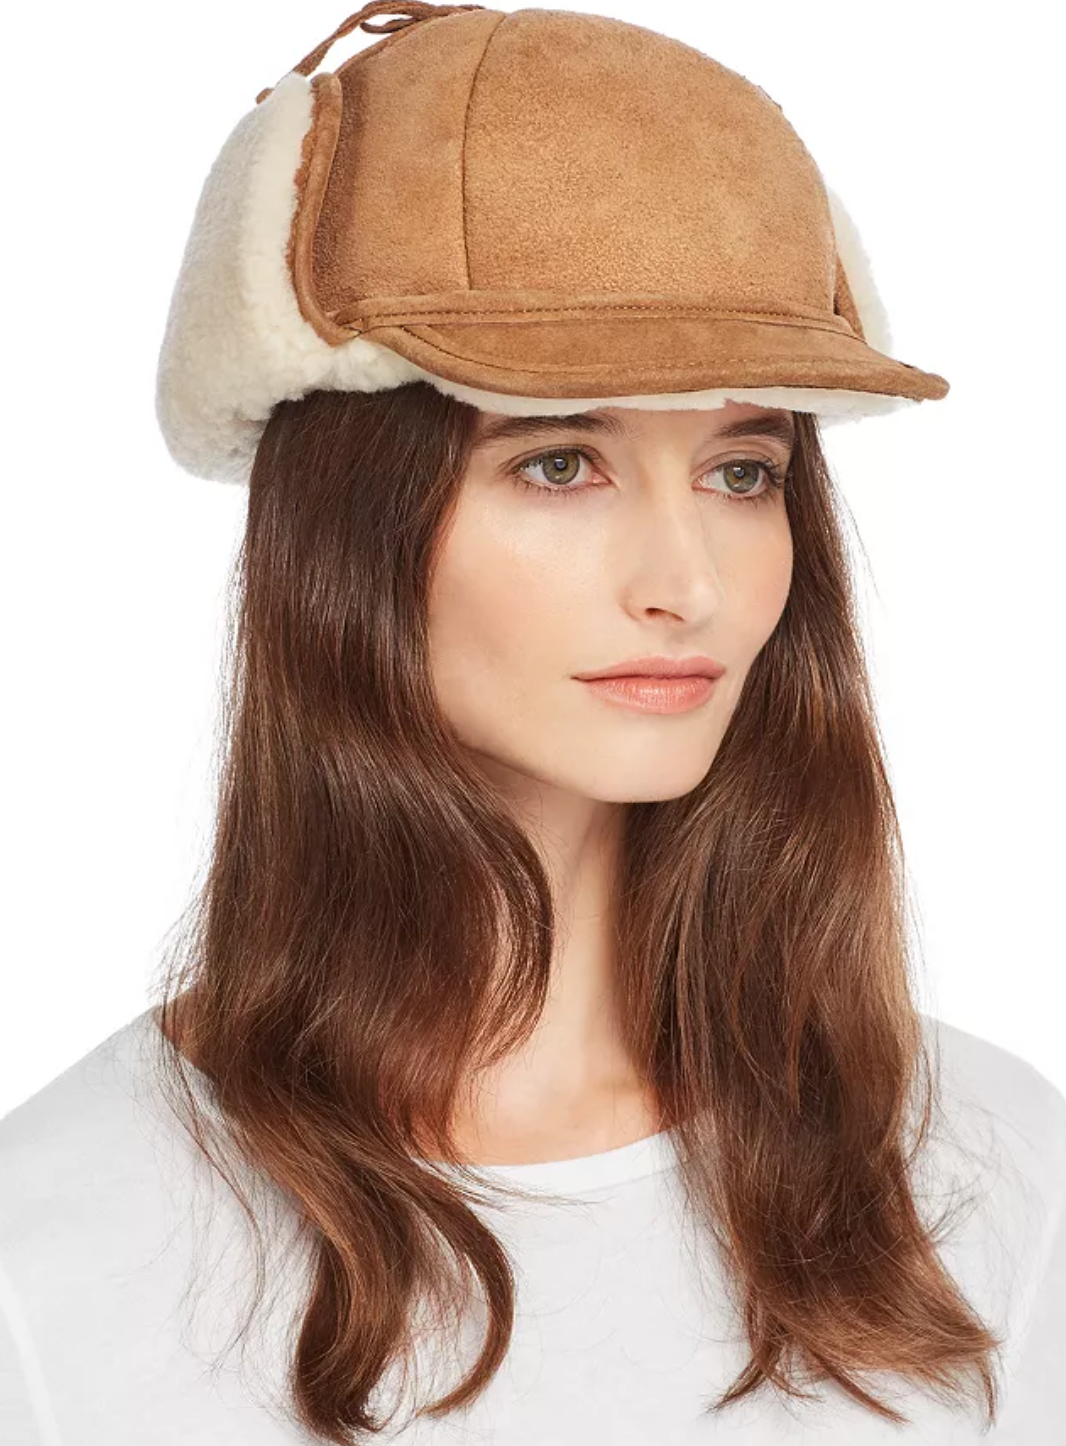 2-86340 The Drake - a Lady Fudd in suede and shearling by Crown Cap